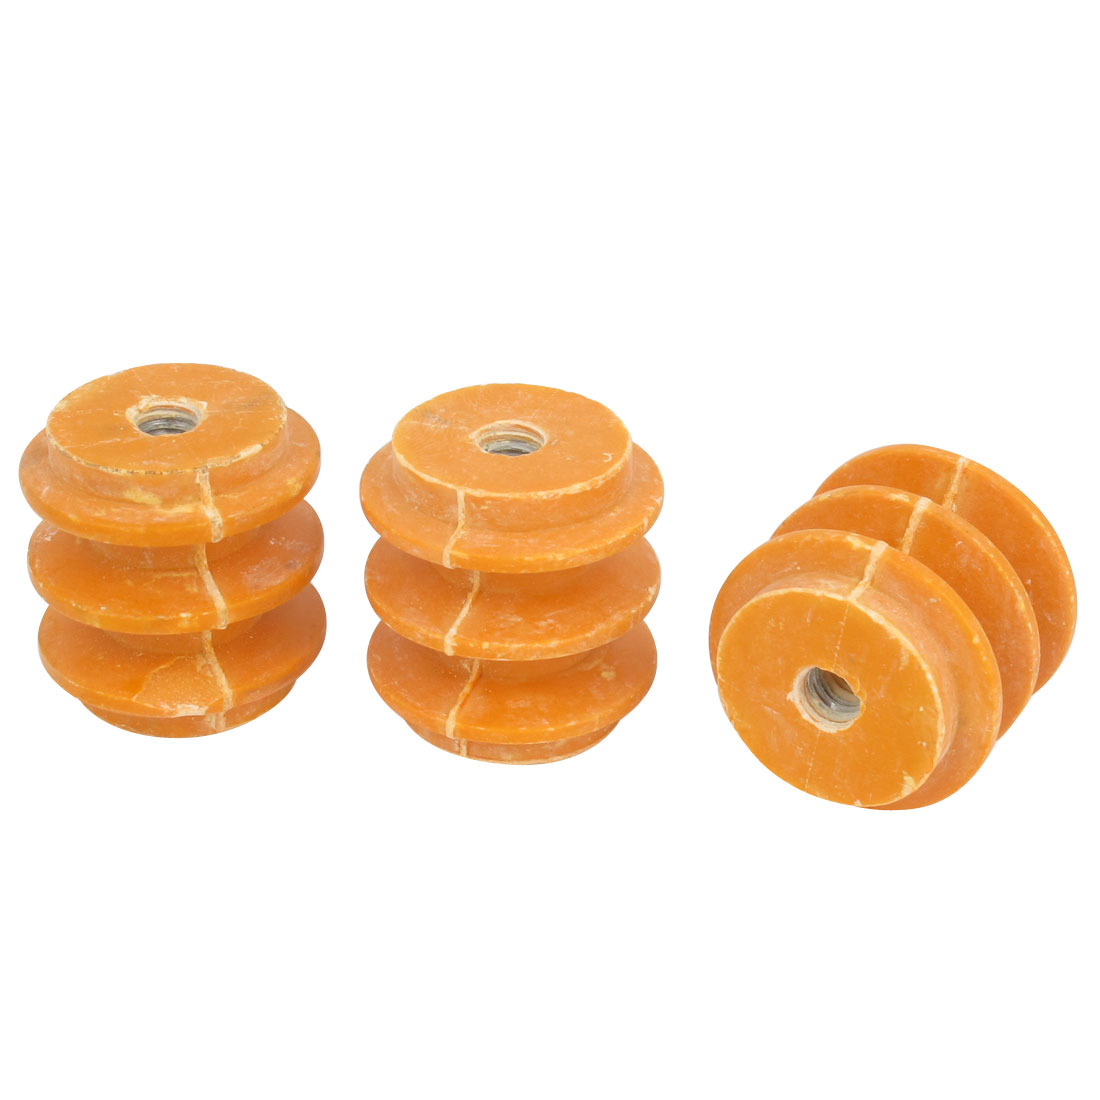 "3 Pcs 660V Water Resistance 1/4"" Thread Busbar Insulator Orange 1.1"" x 1.1"""